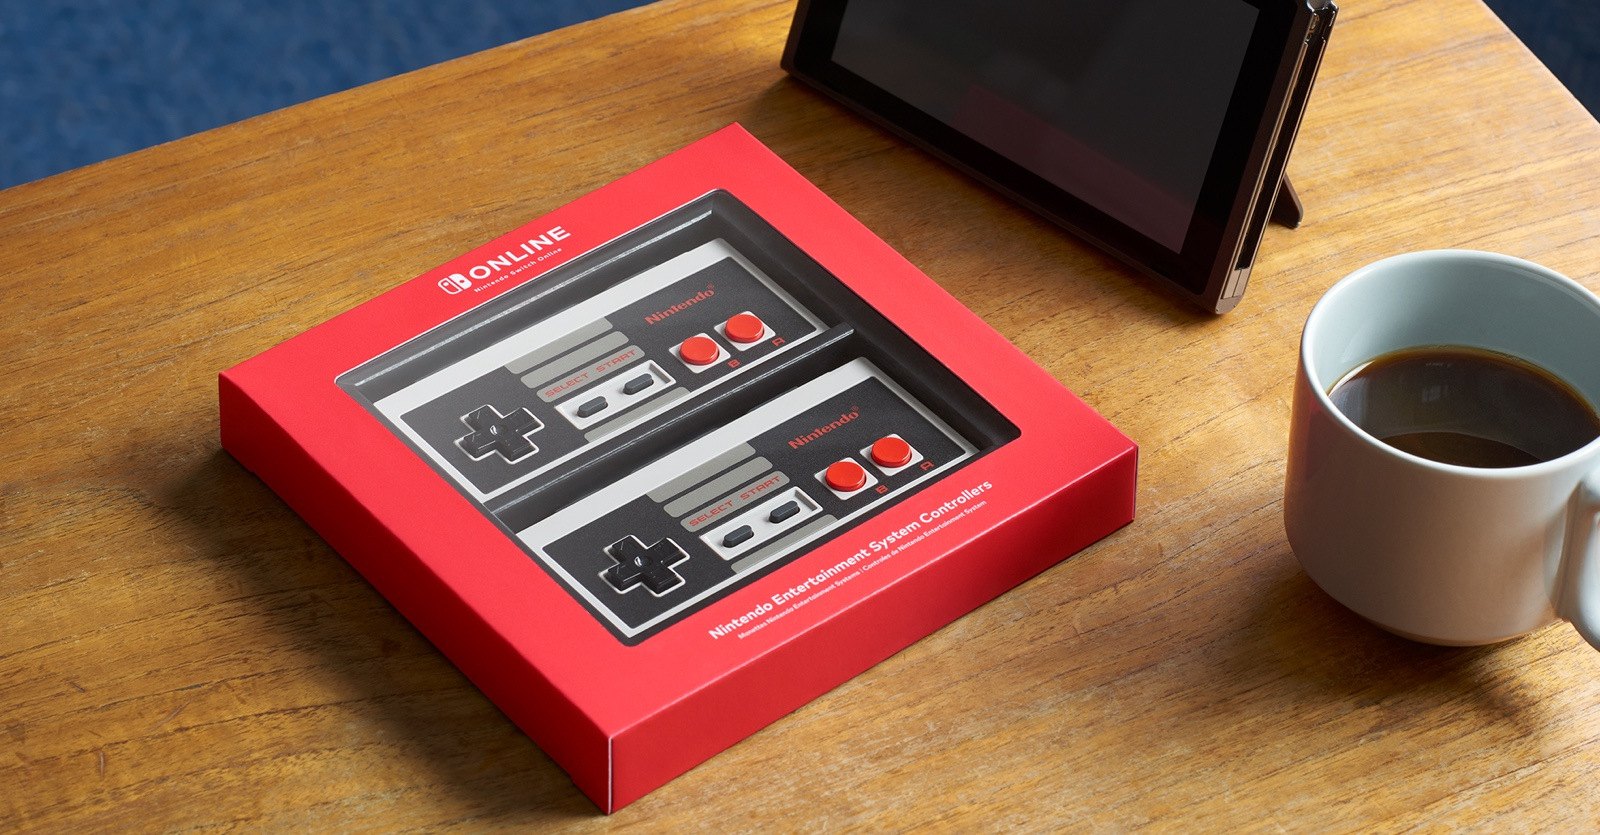 Switch Online NES controller shipments delayed throughout Europe due to Nintendo oversight